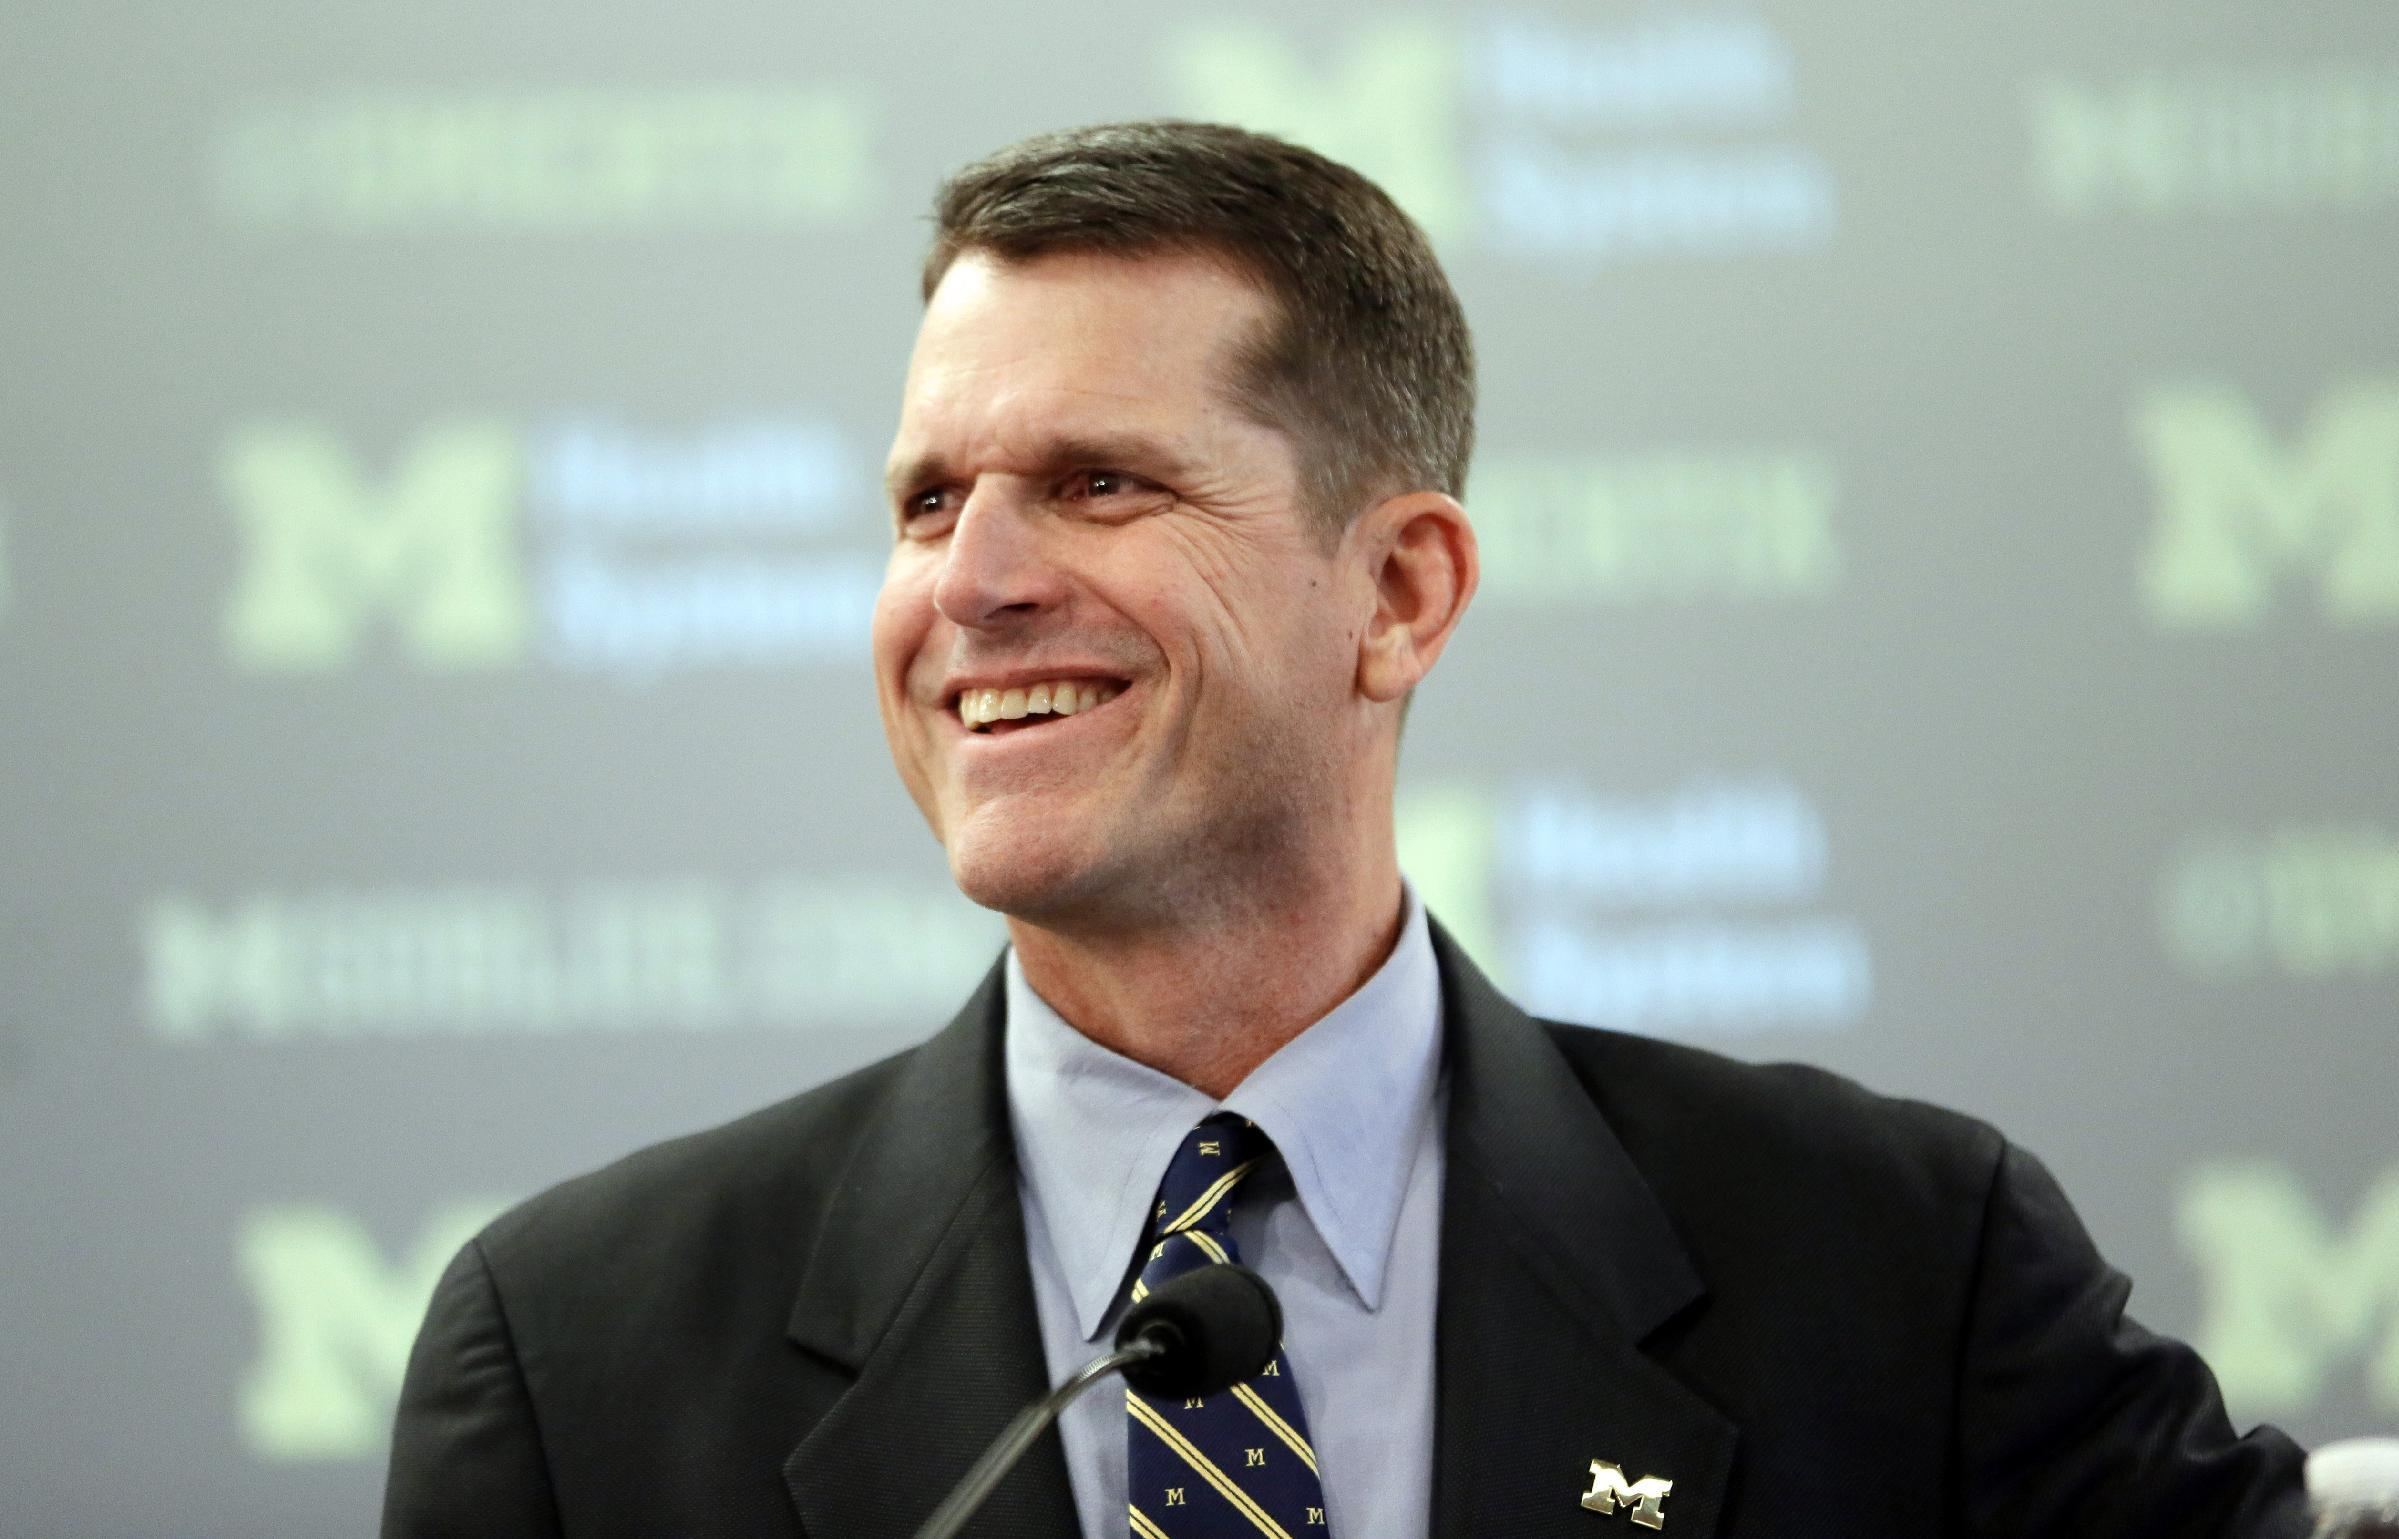 Michigan coach Jim Harbaugh assists car crash victims